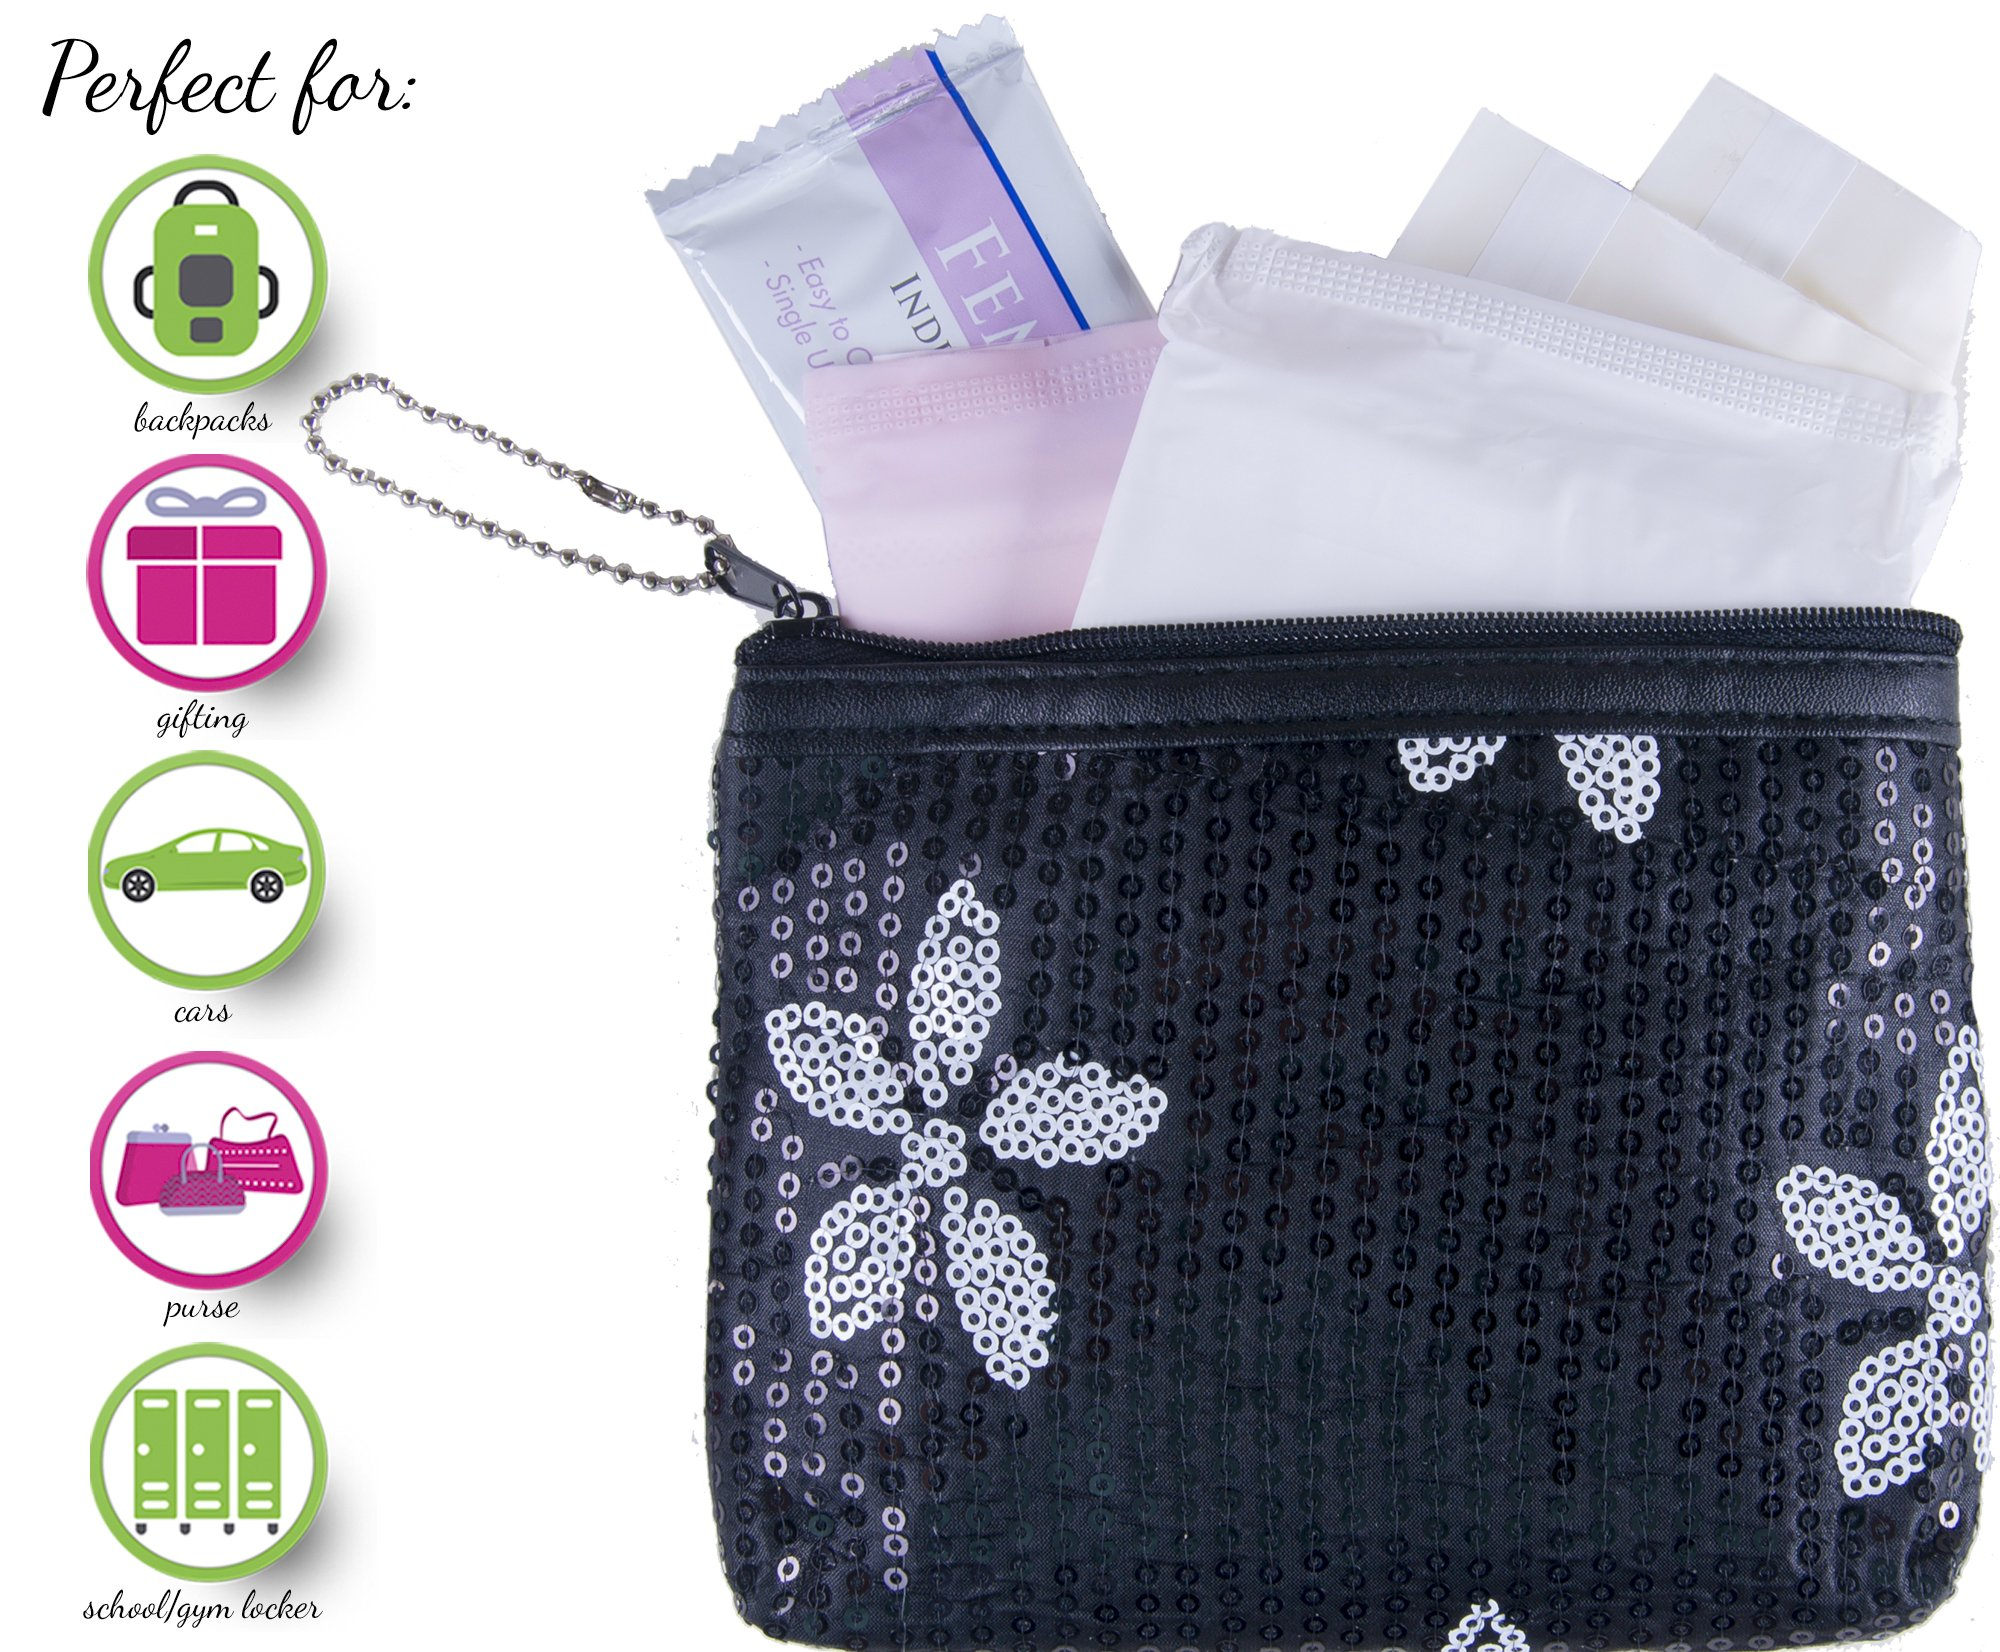 Menstruation Kit - First Period Kit To-go! (Period Starter Kit with all Natural Pads) (Black)